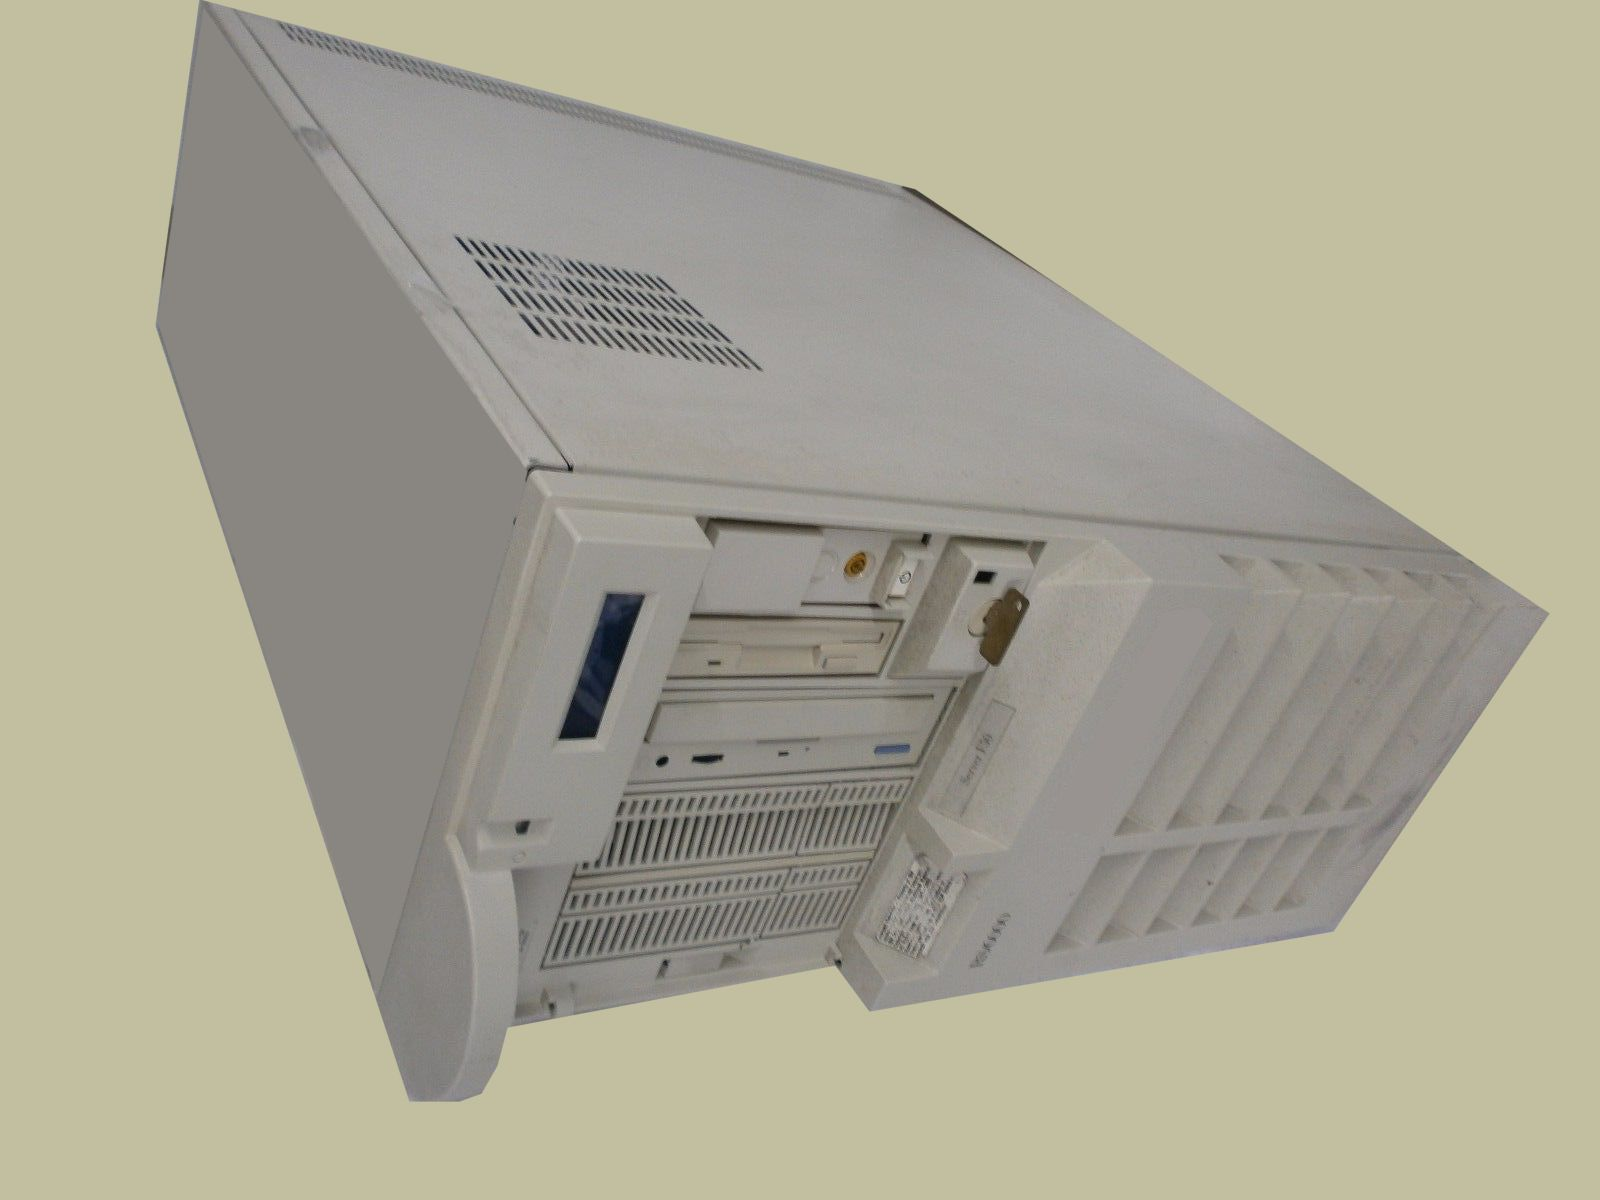 IBM RS6000 server used by FileNet to control the HP Surestore Optical Disk Jukebox Library